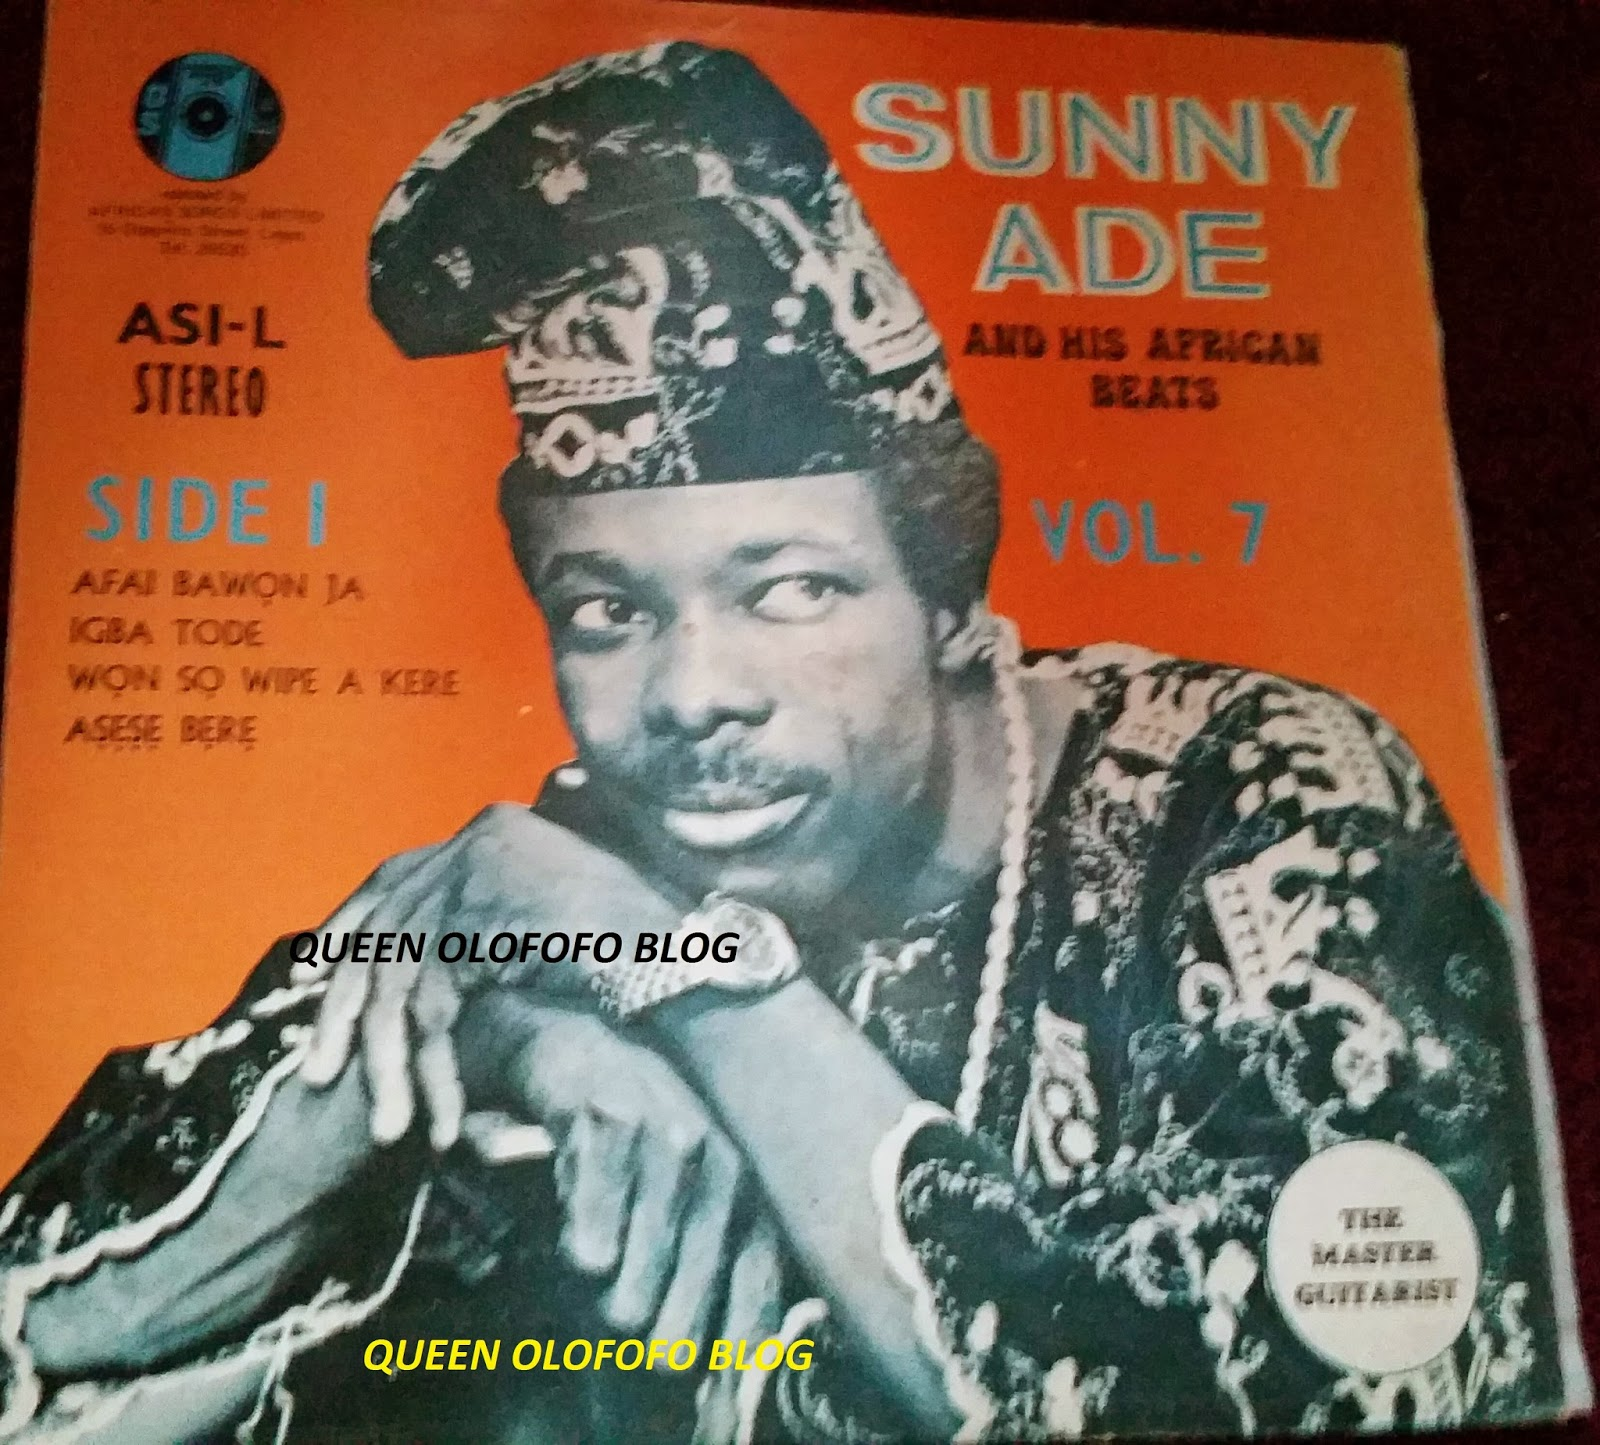 sunny ade and the african beats afai bawon ja